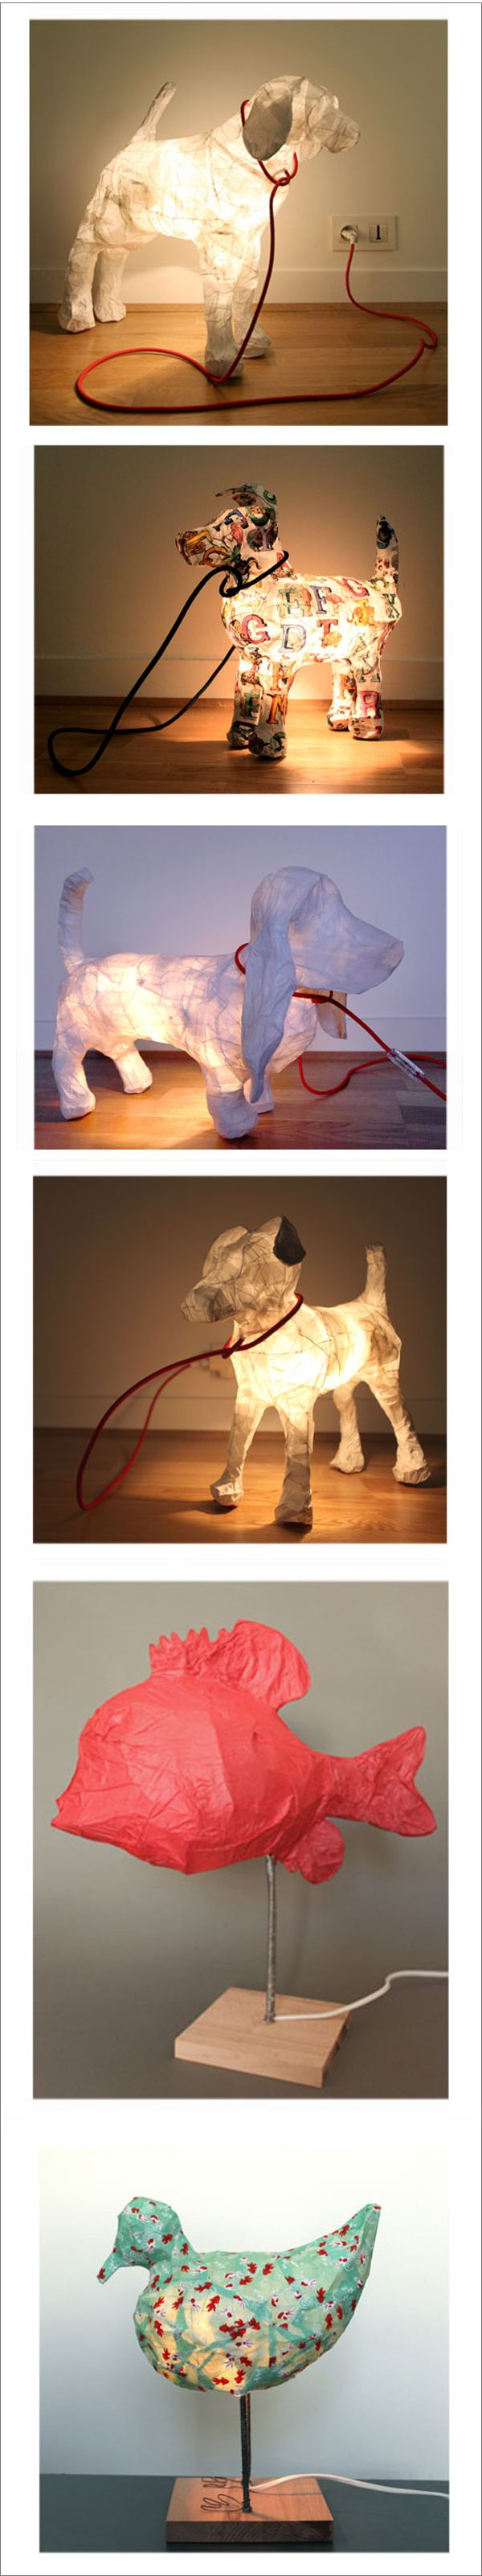 animal-shaped paper lamps